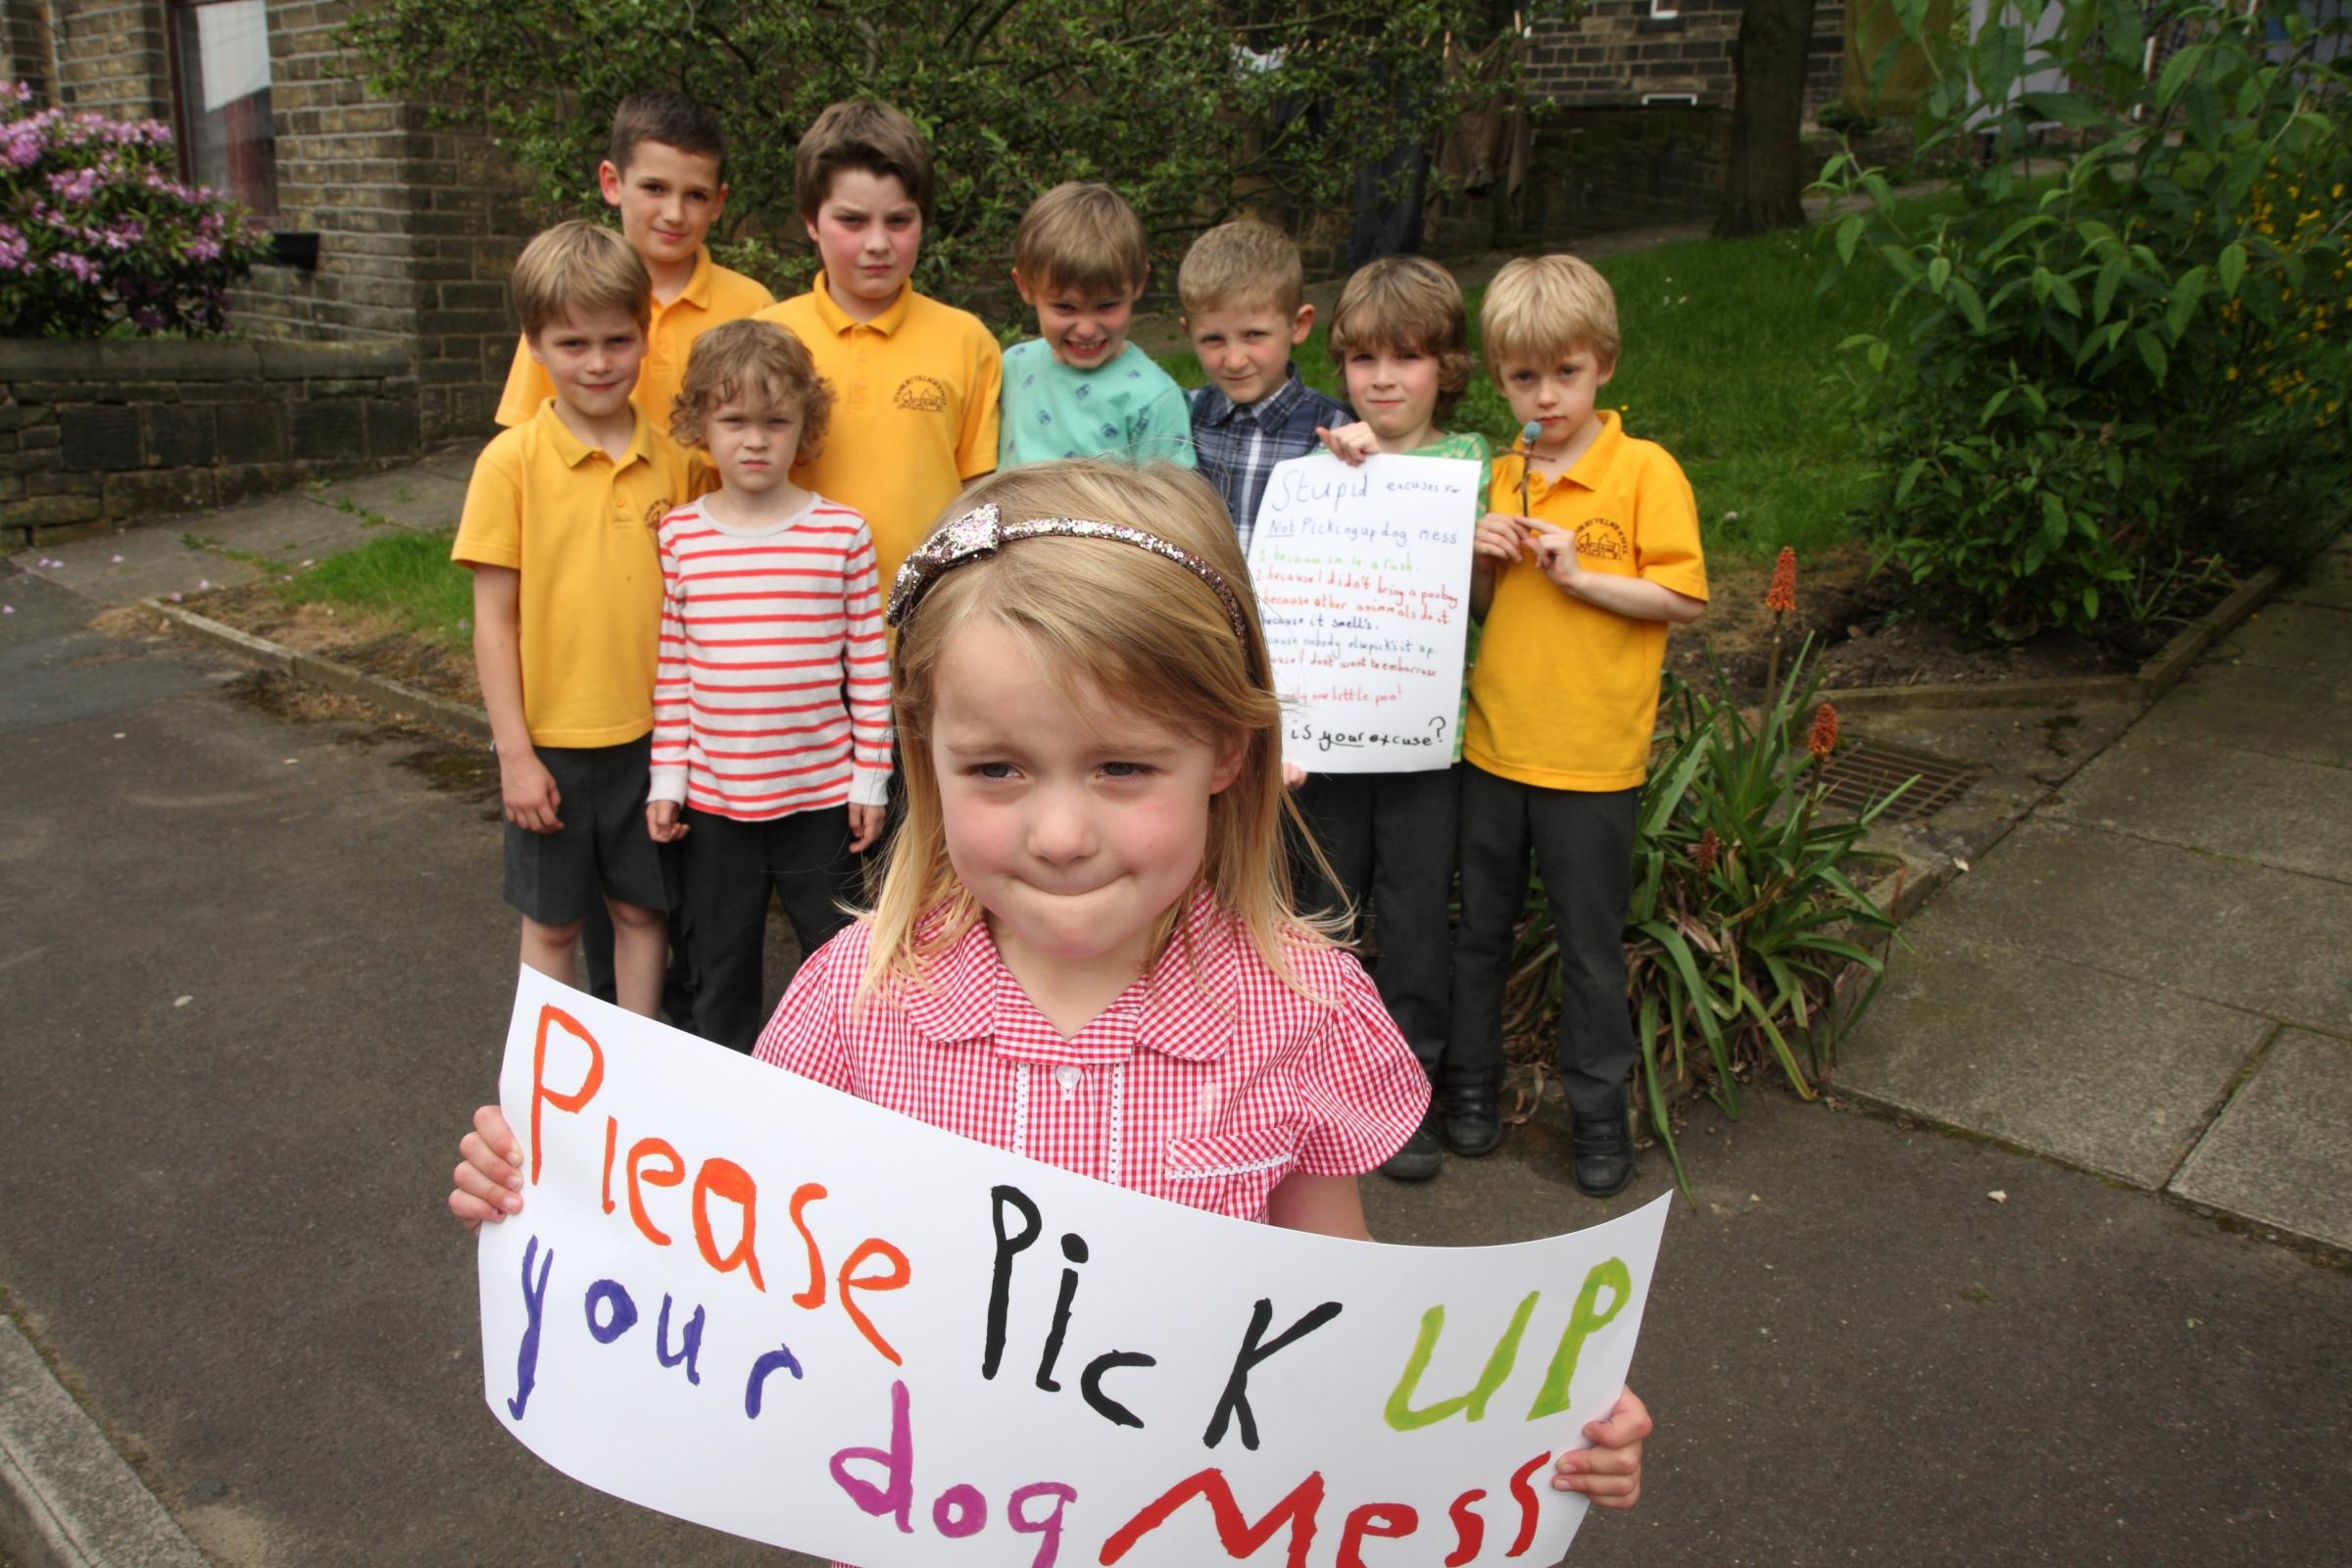 Haworth youngsters and parents urge dog owners to clean up after their pets